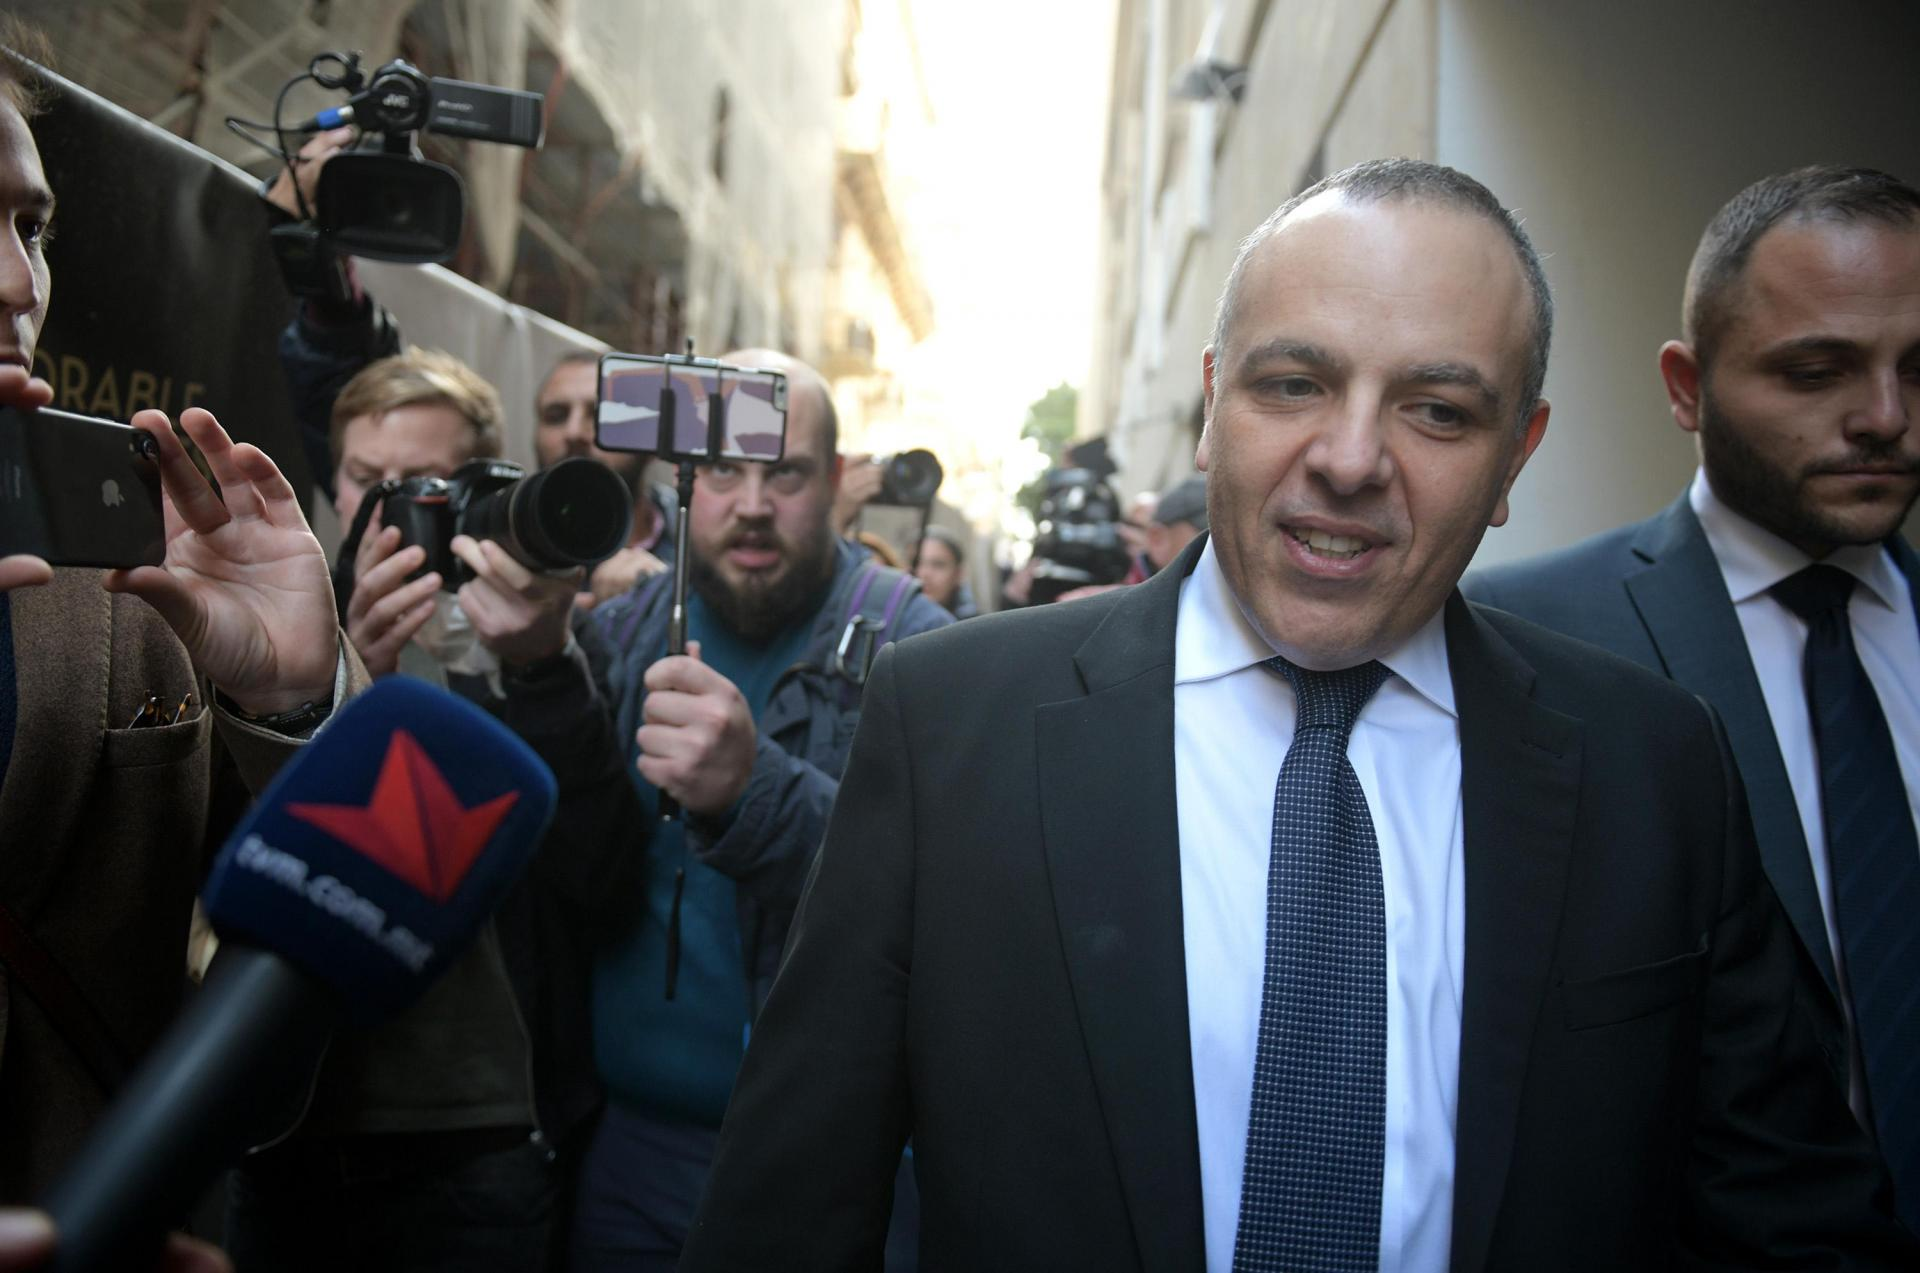 Keith Schembri leaving court last week.